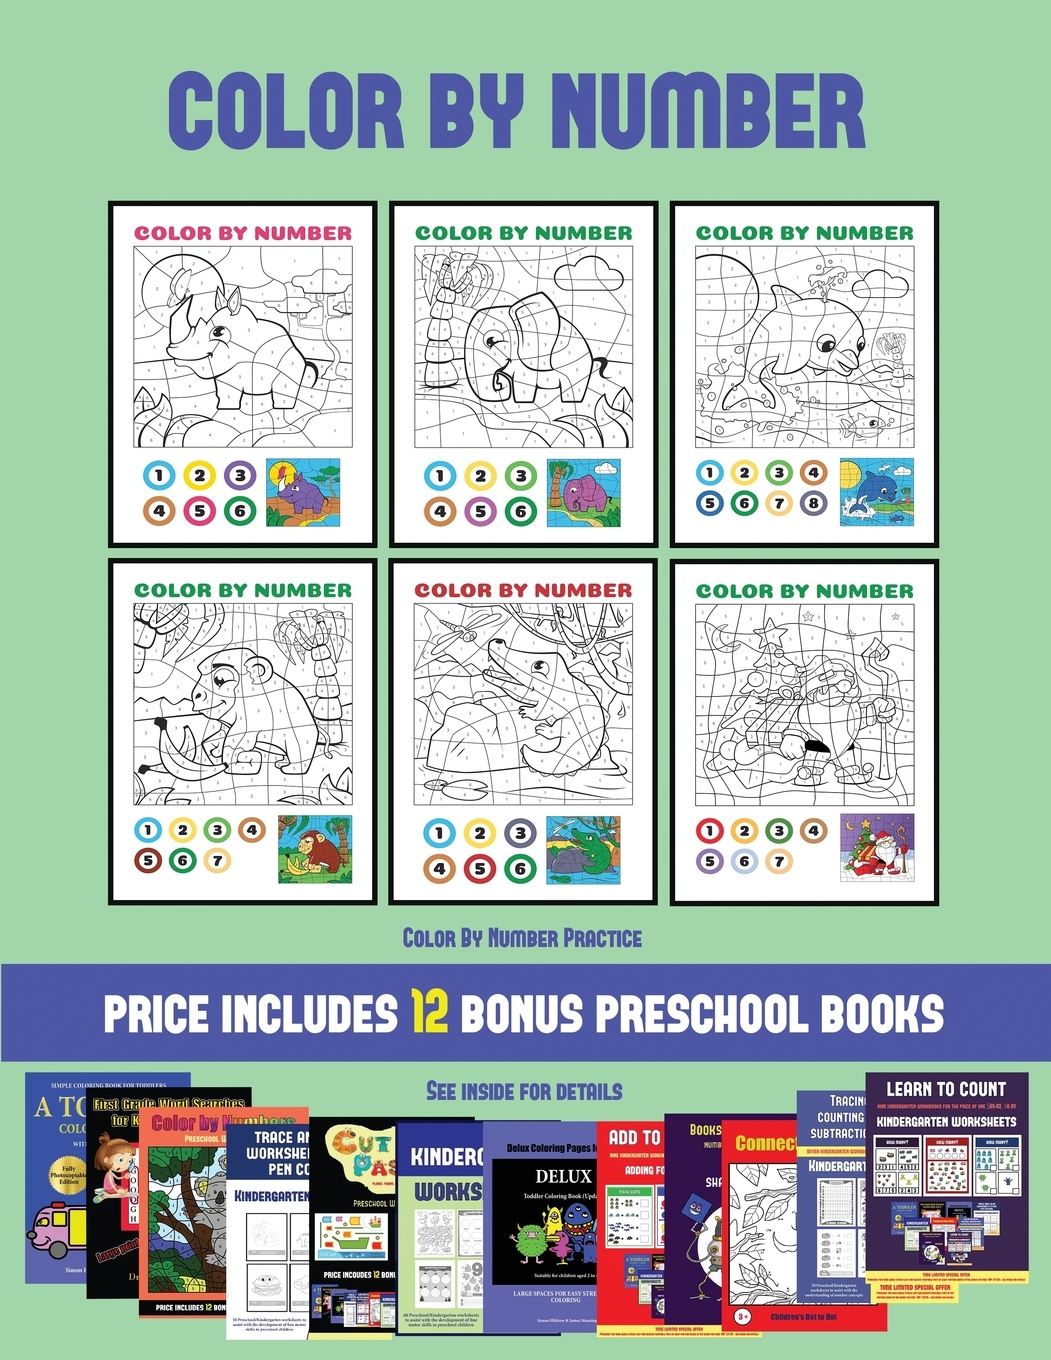 Color By Number Practice Color By Number 20 Printable